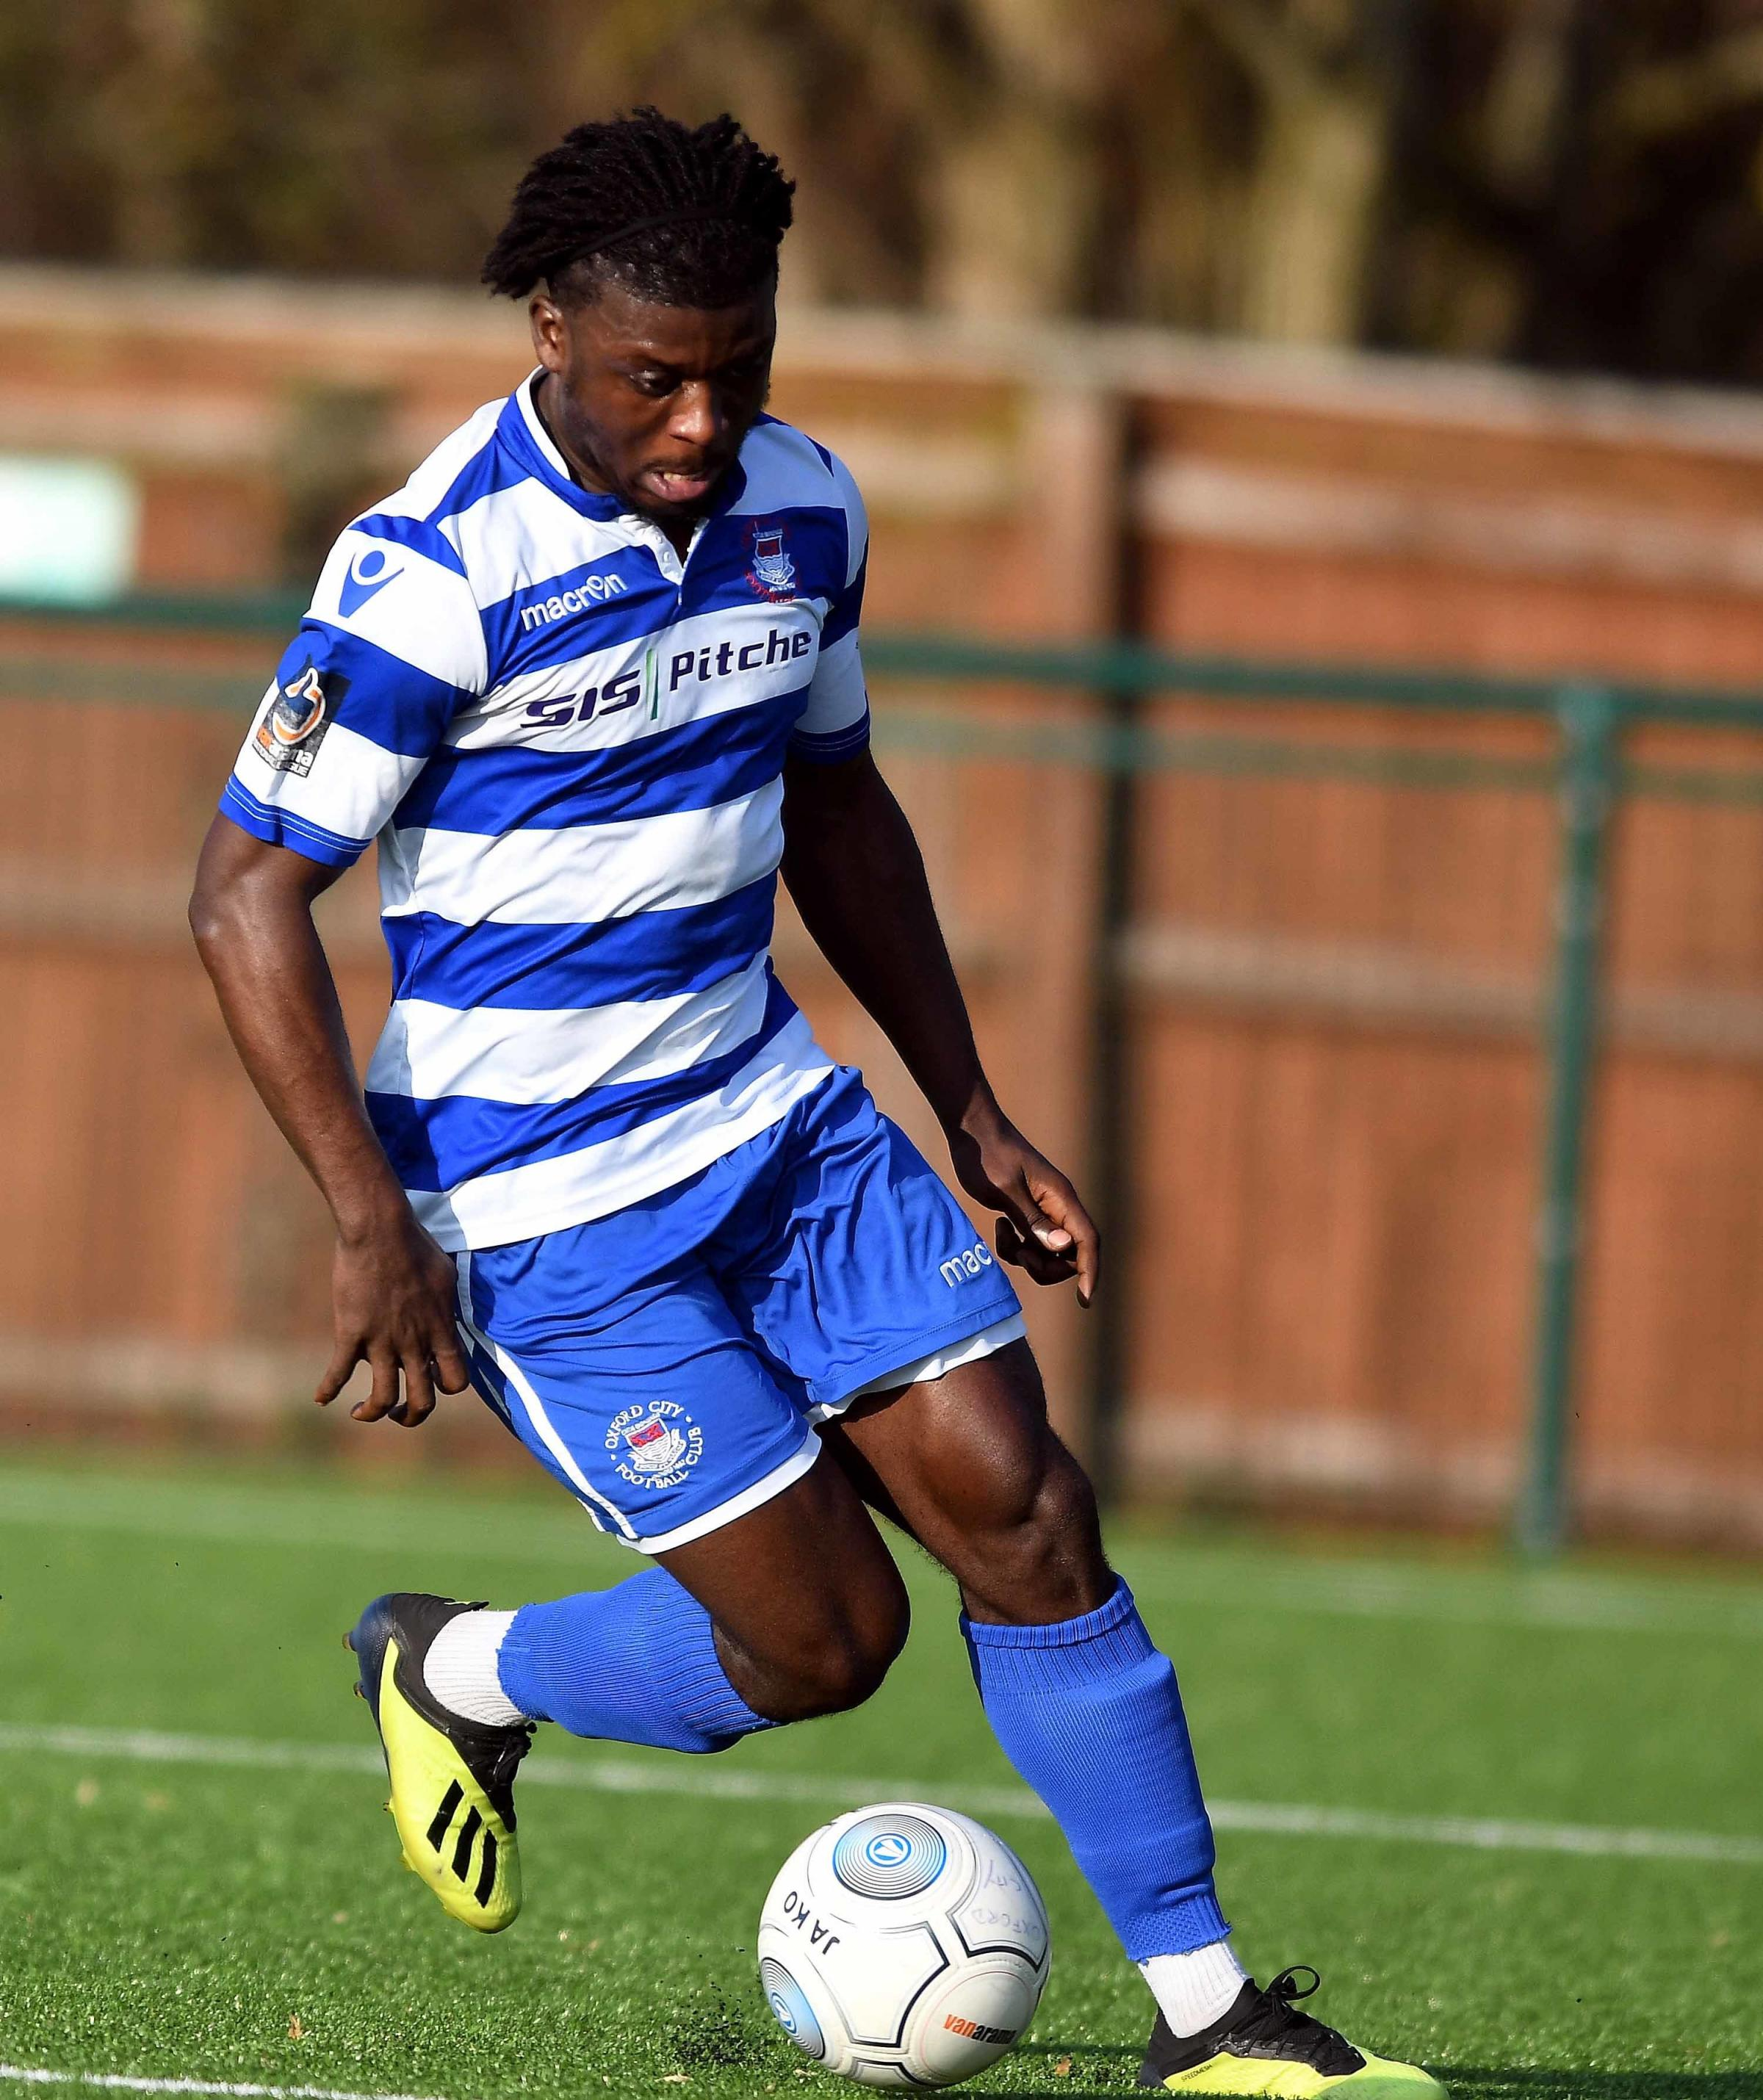 Kabongo Tshimanga was on target to give Oxford City a first league win of 2019